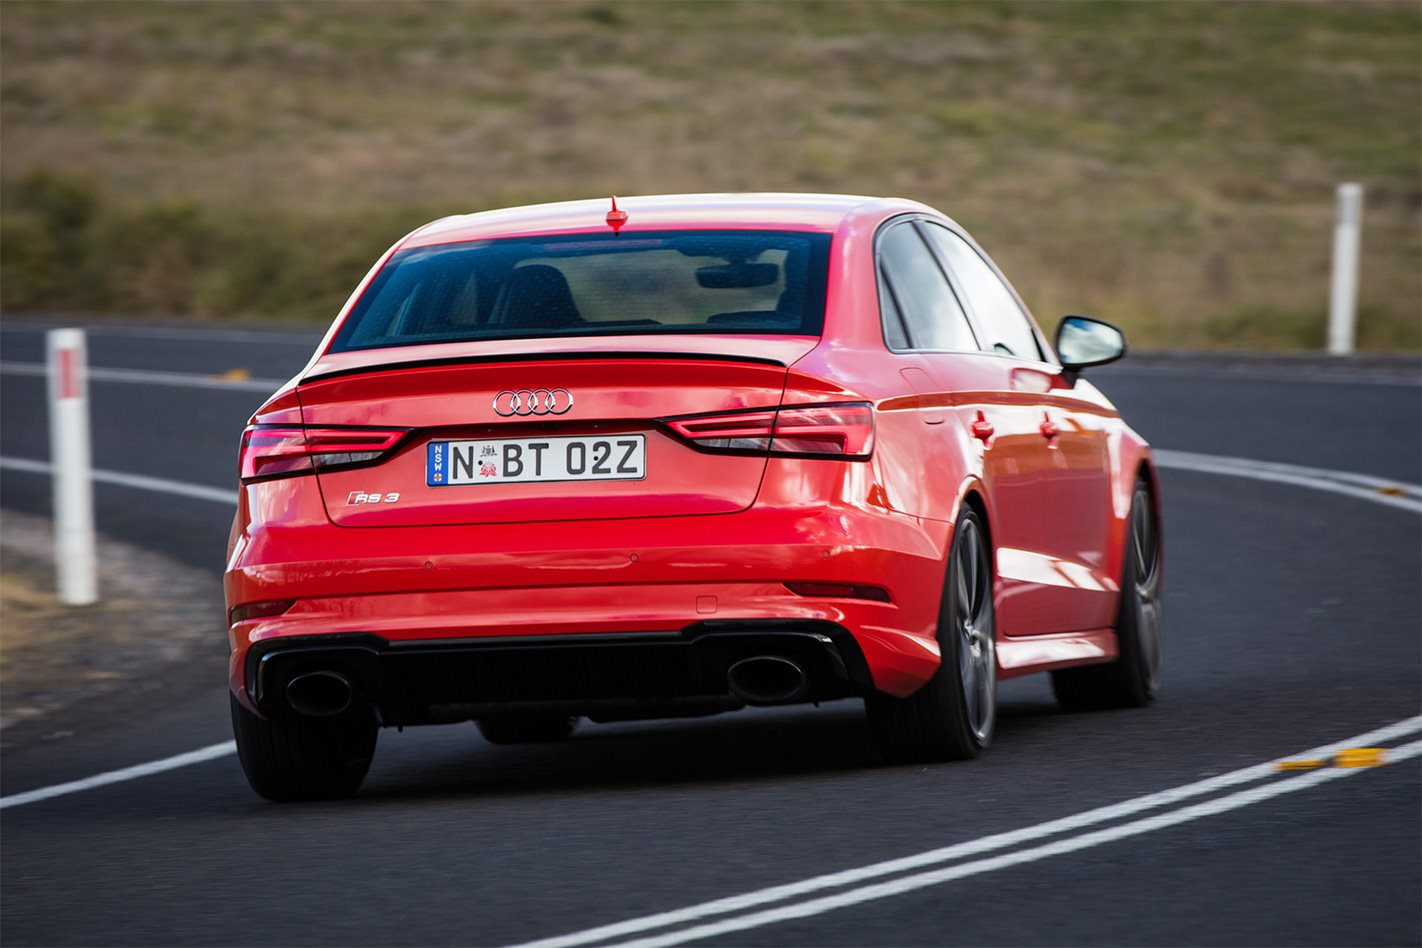 2017 Audi RS3 Sedan rear driving